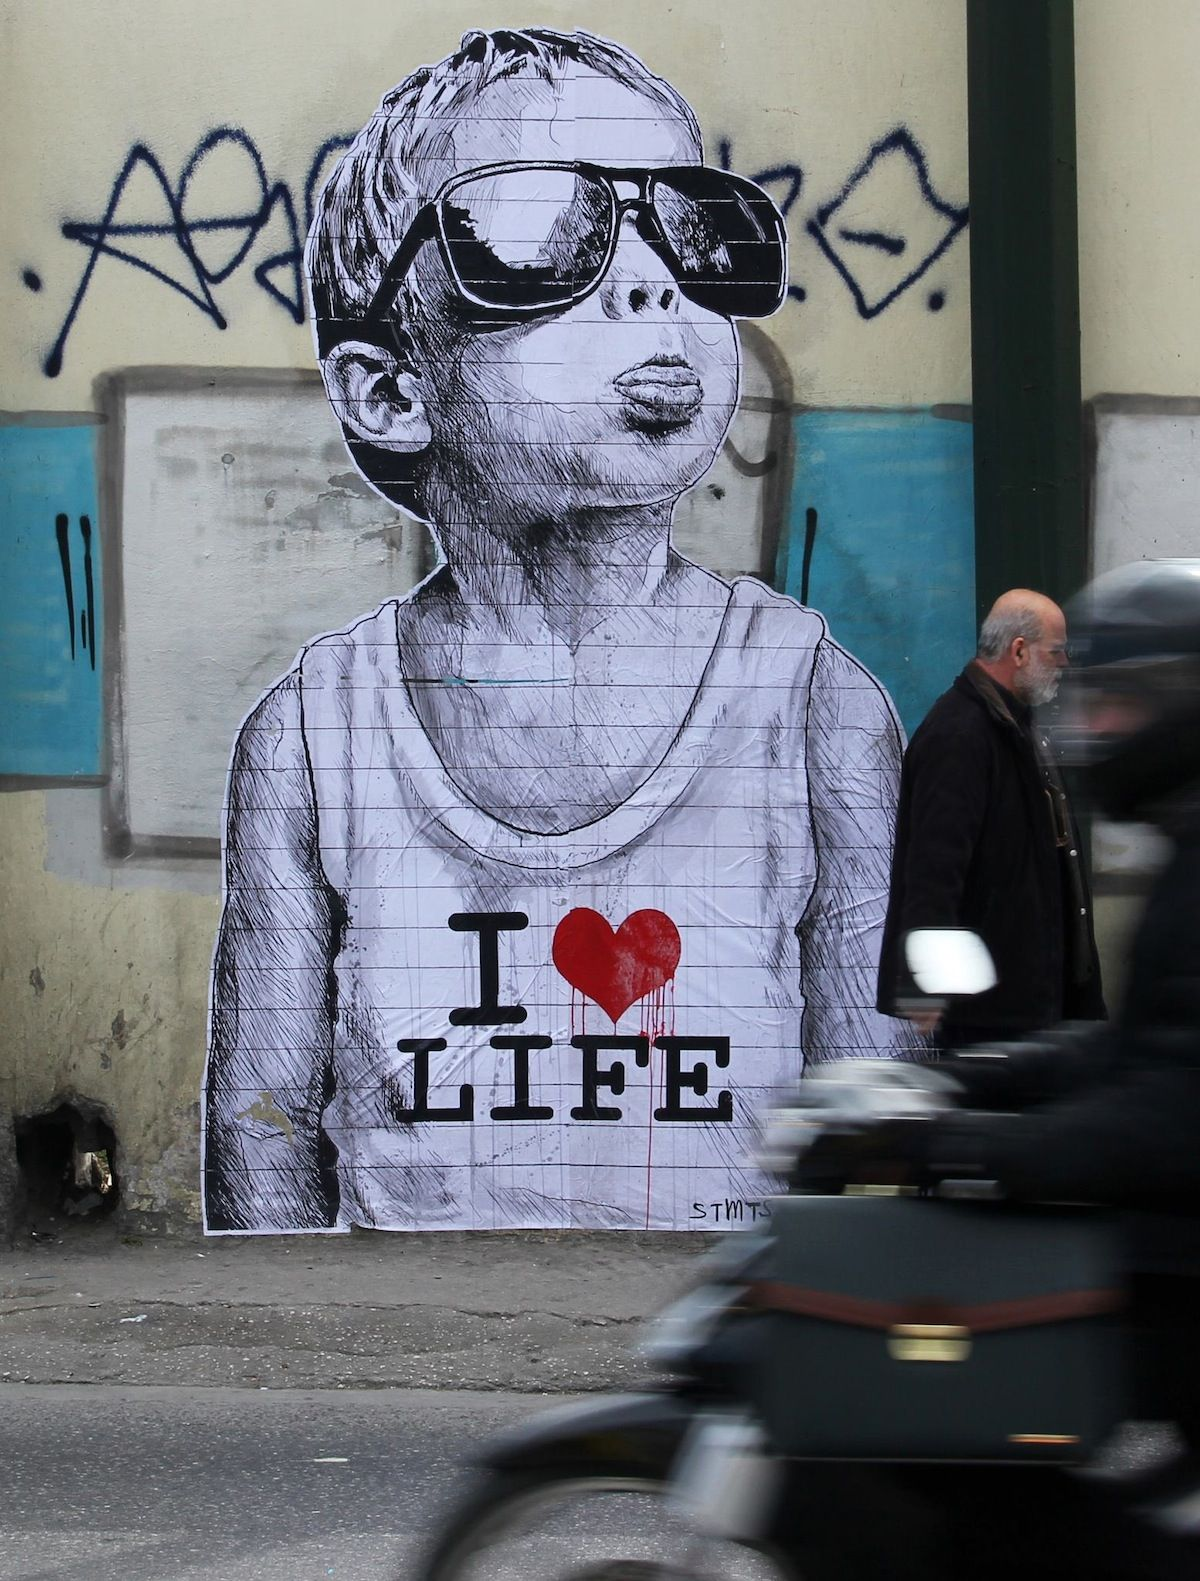 Street Art by STMTS in Athens, Greece